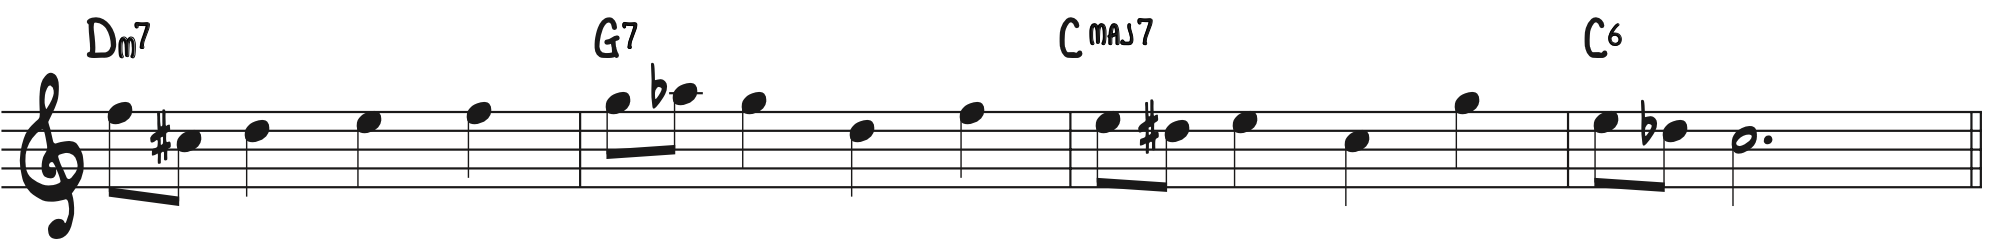 2-5-1 Restrictive Practice with Chromatic Neighbors